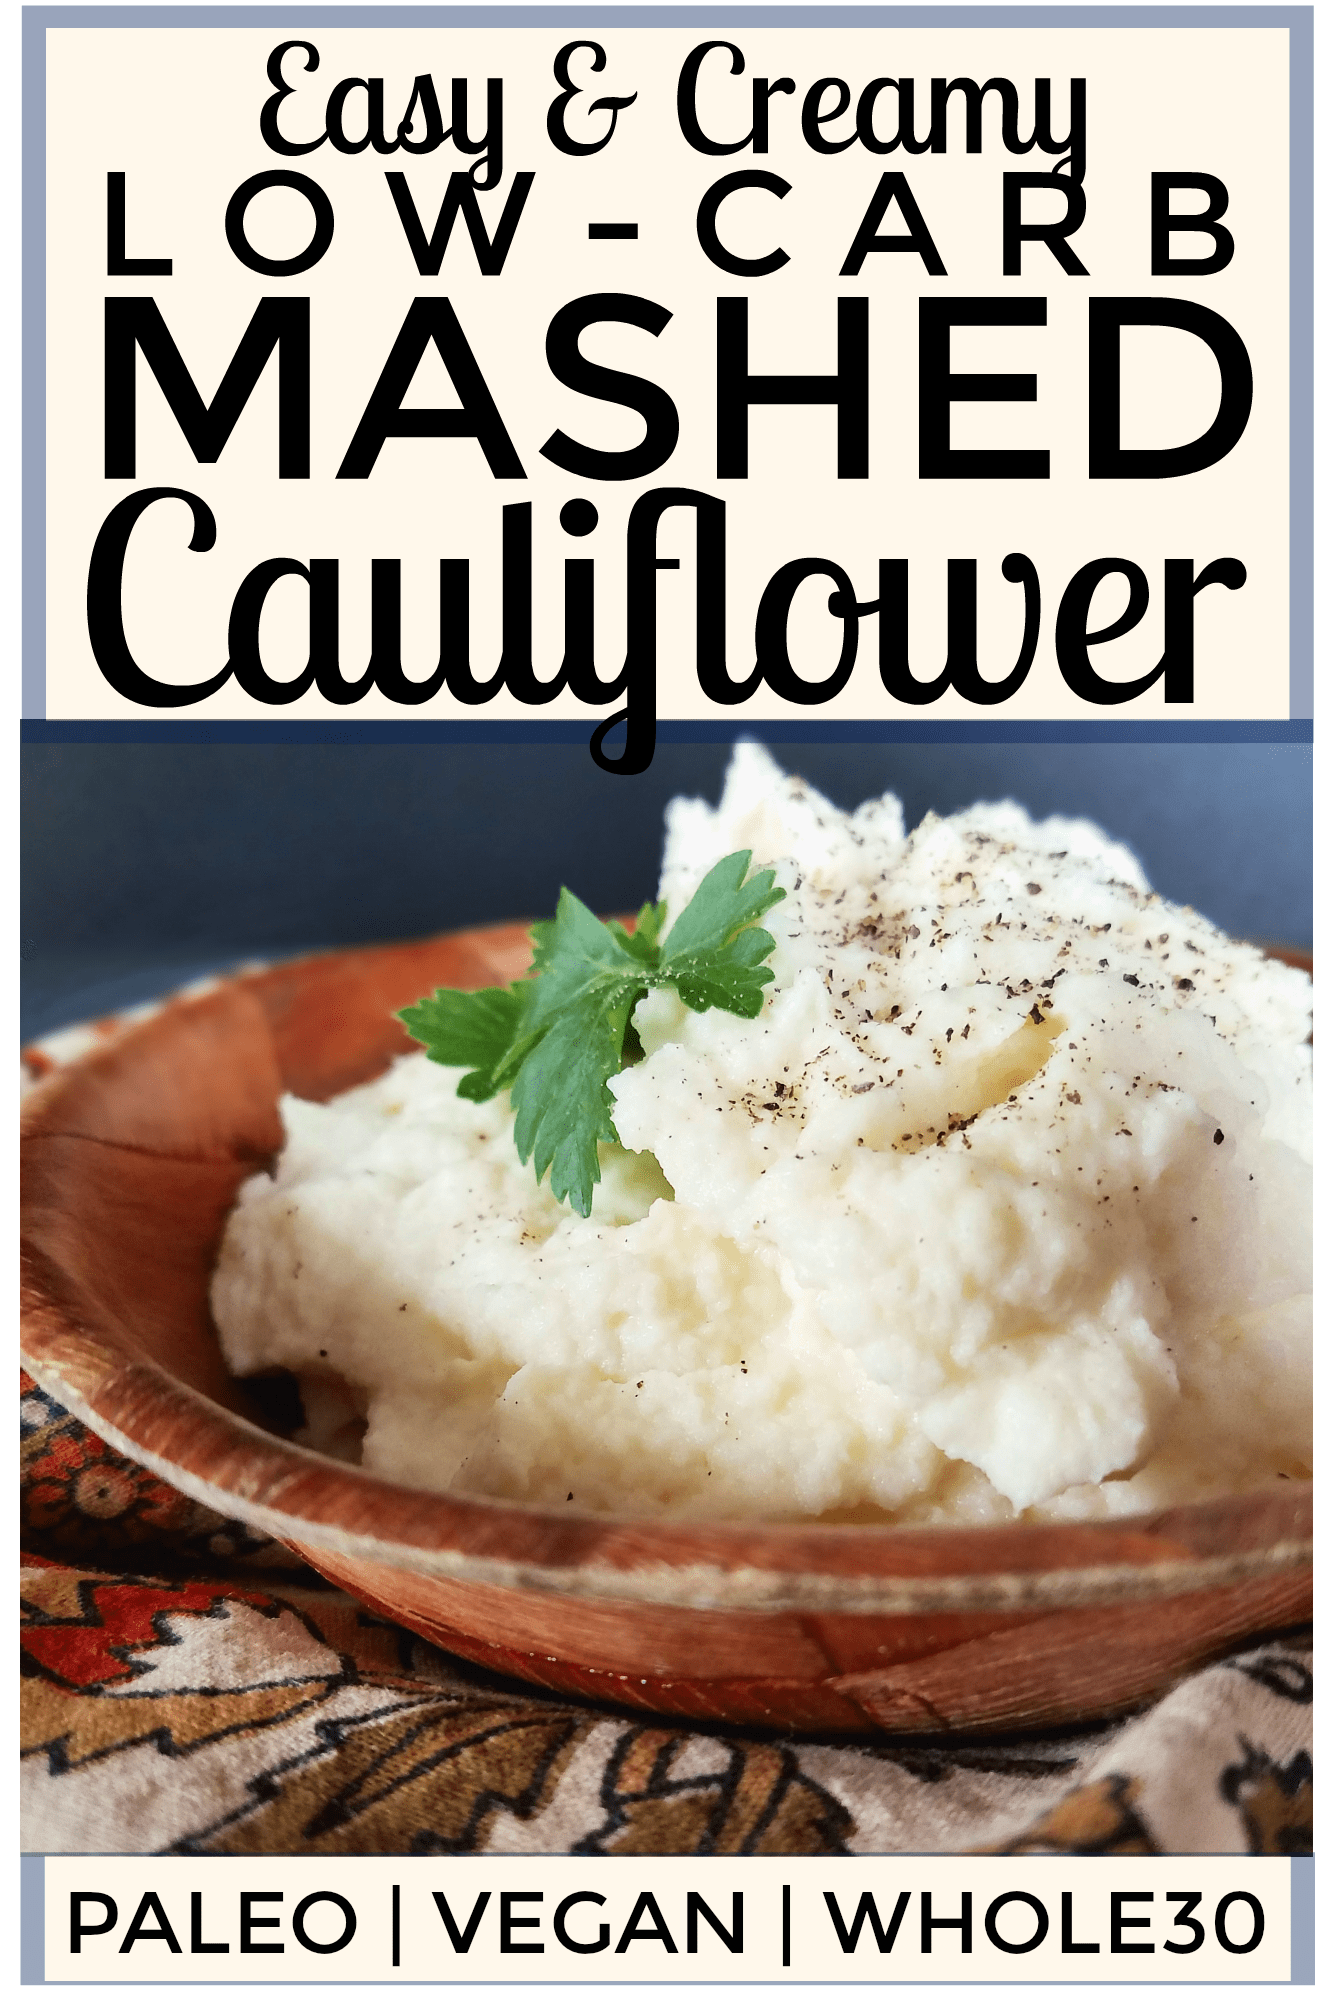 If you\'re looking for a super easy recipe for low carb cauliflower mash, you\'ve found it. This Mashed Cauliflower only takes 15 minutes to prepare, and it\'s so creamy and delicious! Thanks to clean ingredients, it\'s Paleo, vegan, low-carb, keto and Whole30 friendly, too.